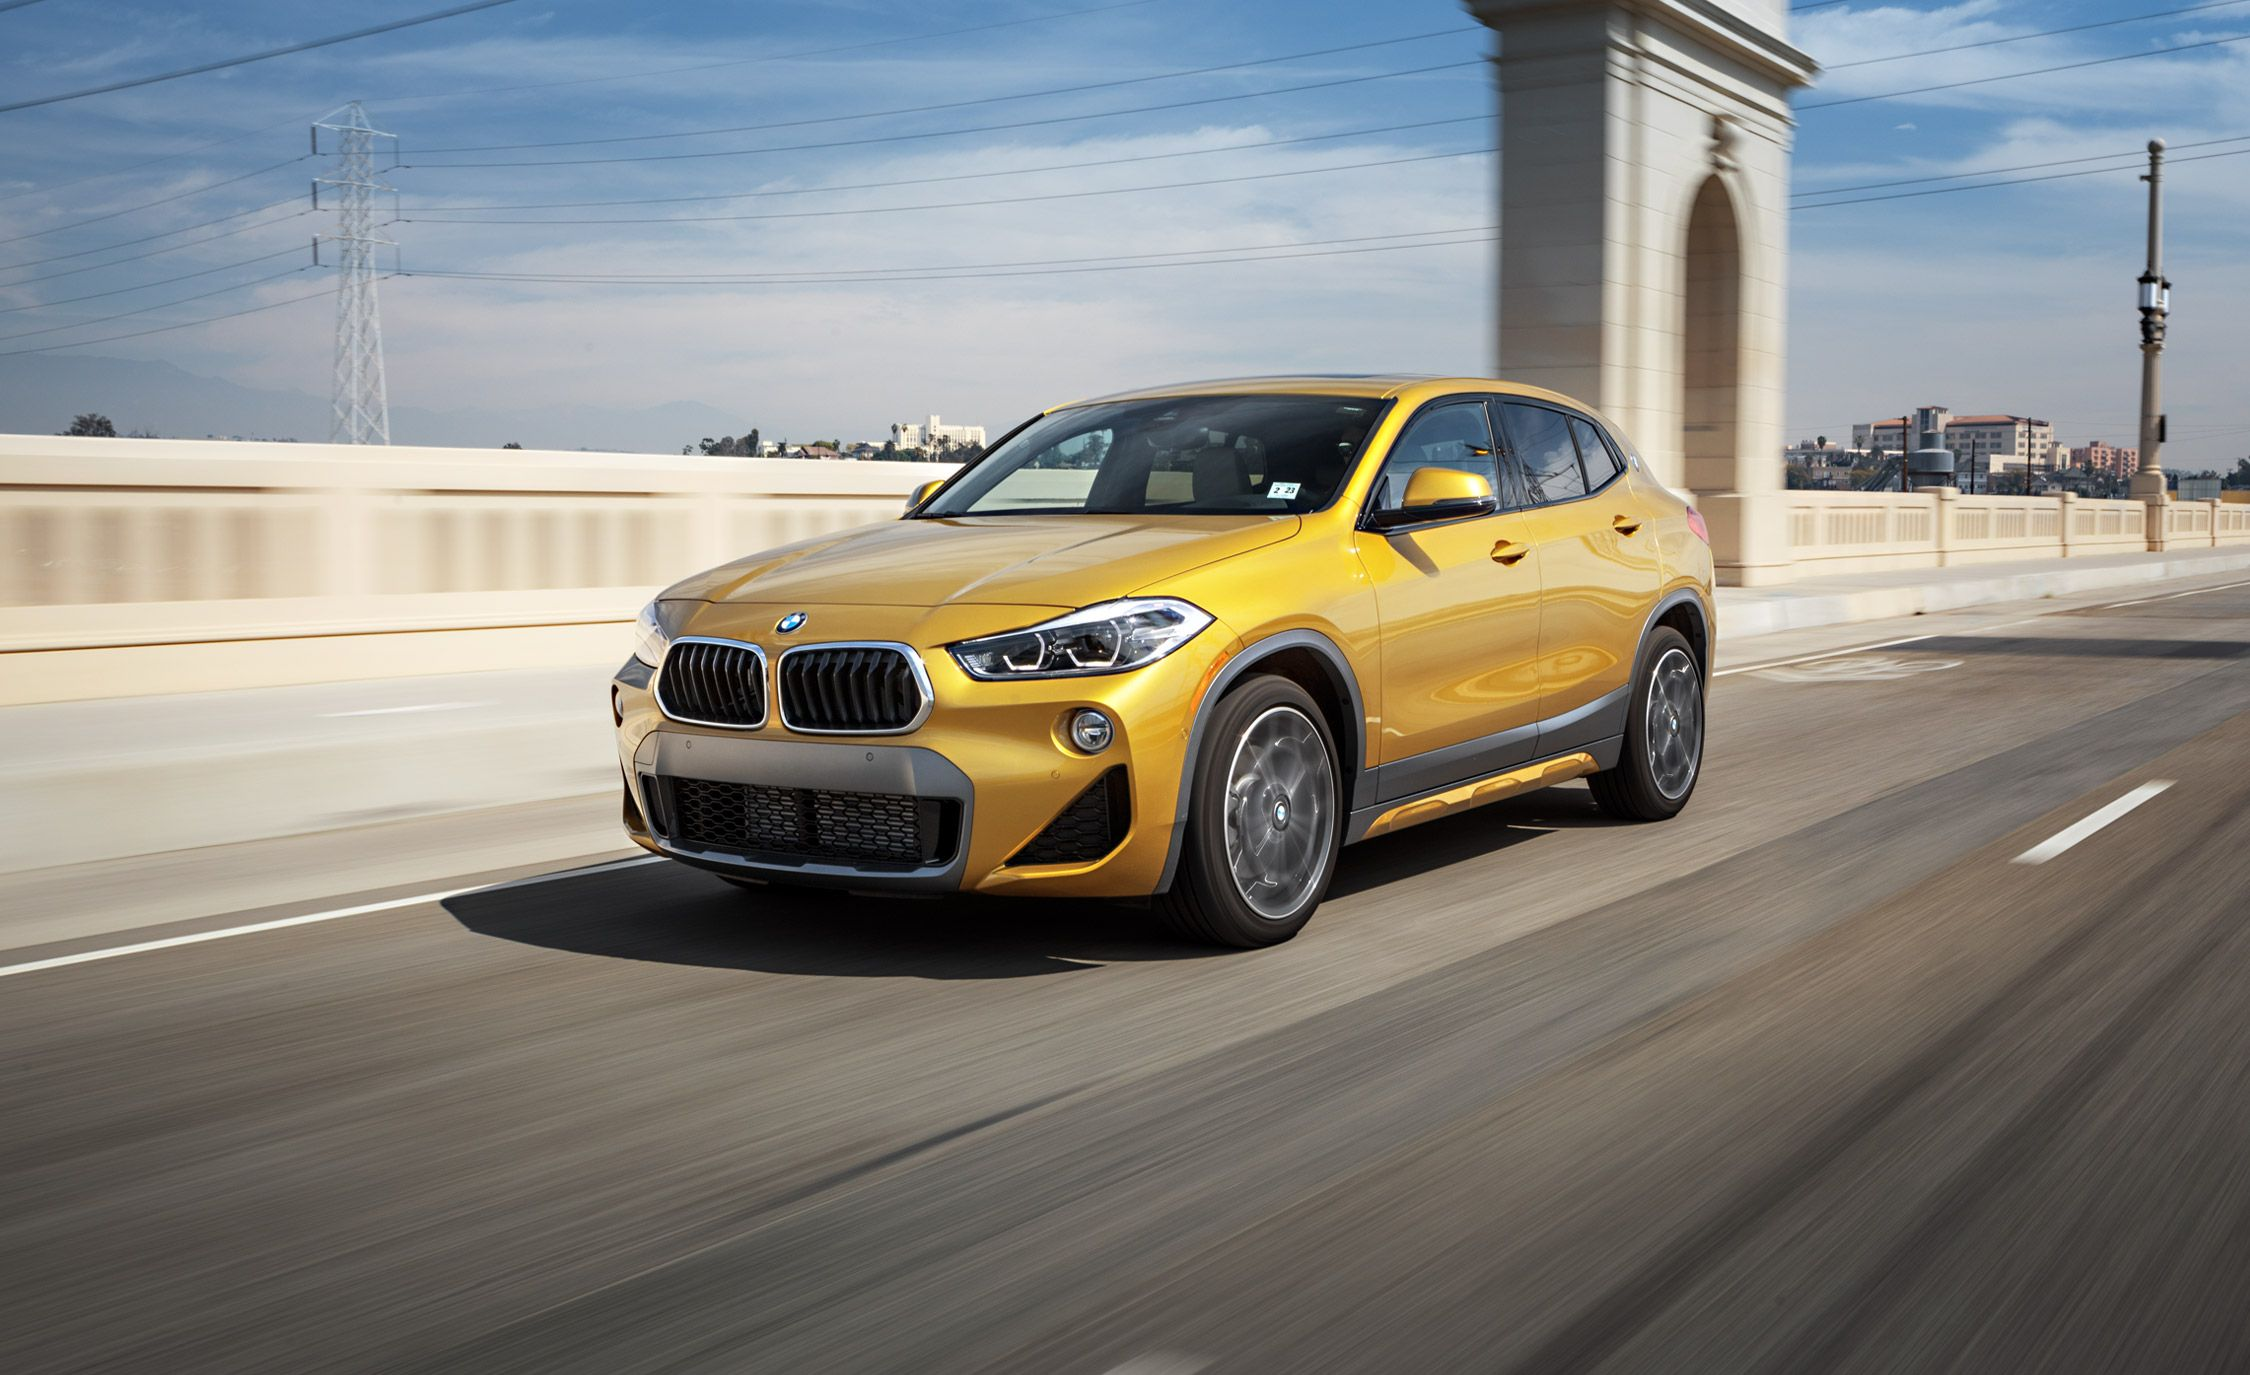 bmw x2 reviews bmw x2 price photos and specs car and. Black Bedroom Furniture Sets. Home Design Ideas